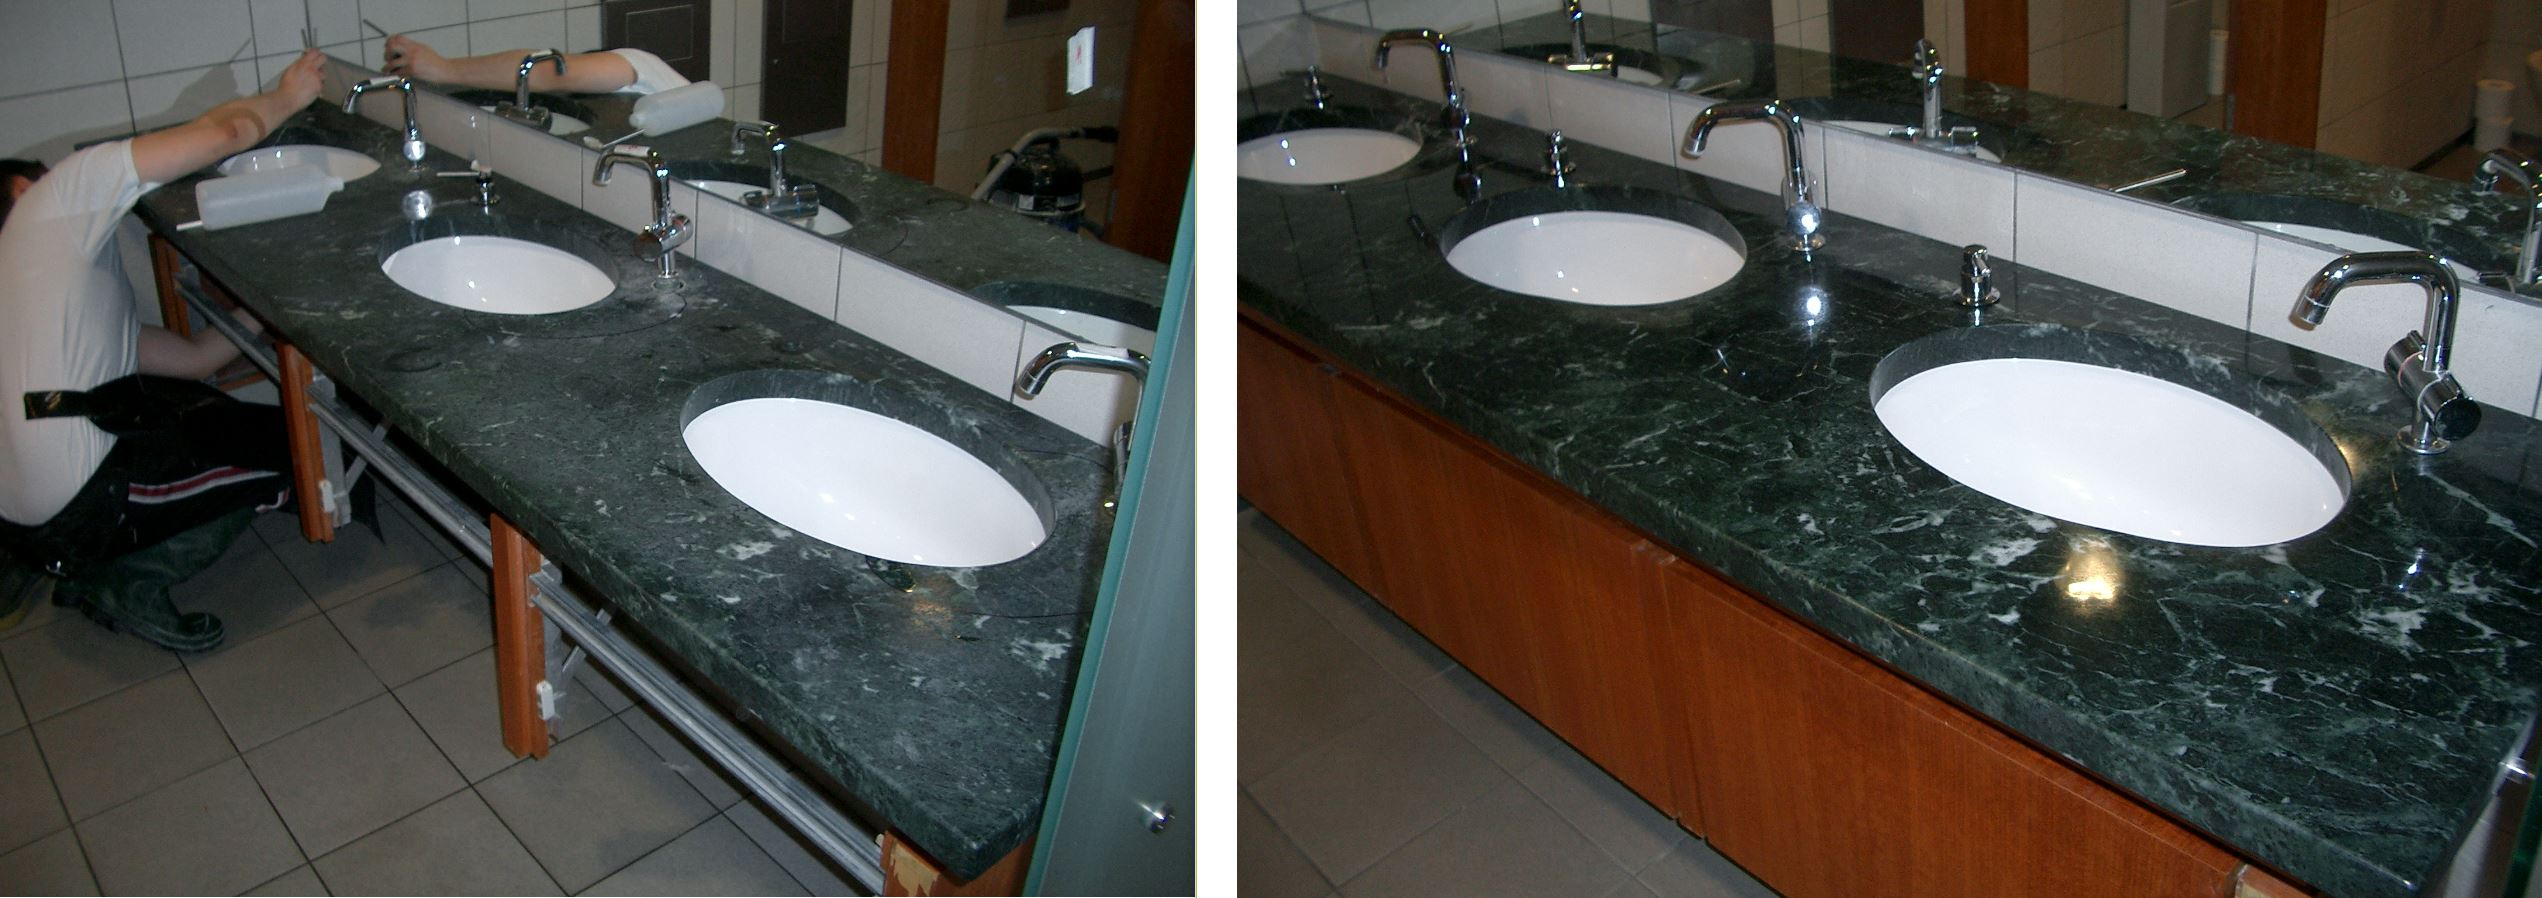 How To Restore Marble Vanity Tops Www Stone Repairs Com